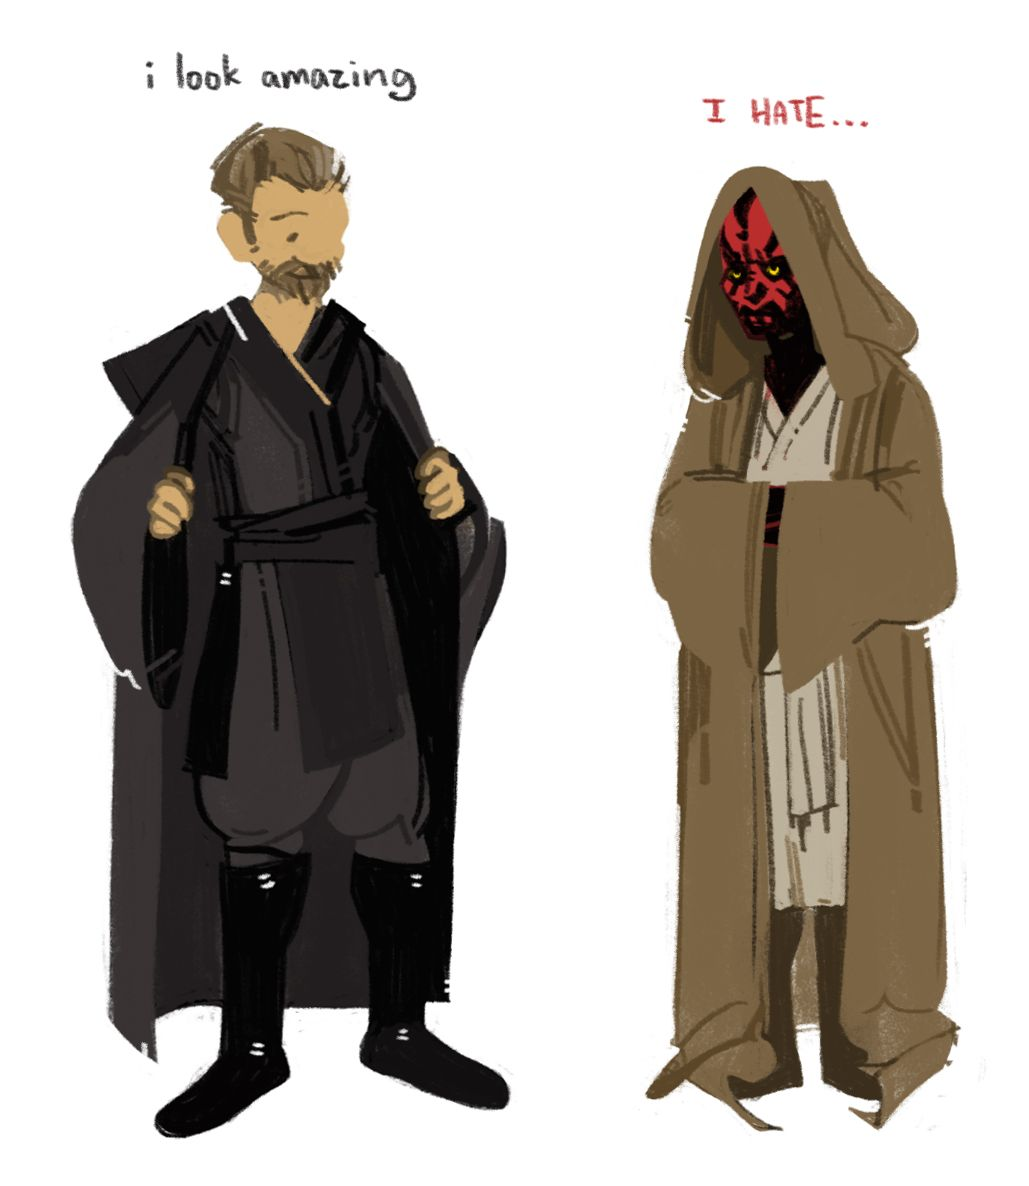 jedi and sith clothing switch | Star Wars | Pinterest | Sith, Star ...